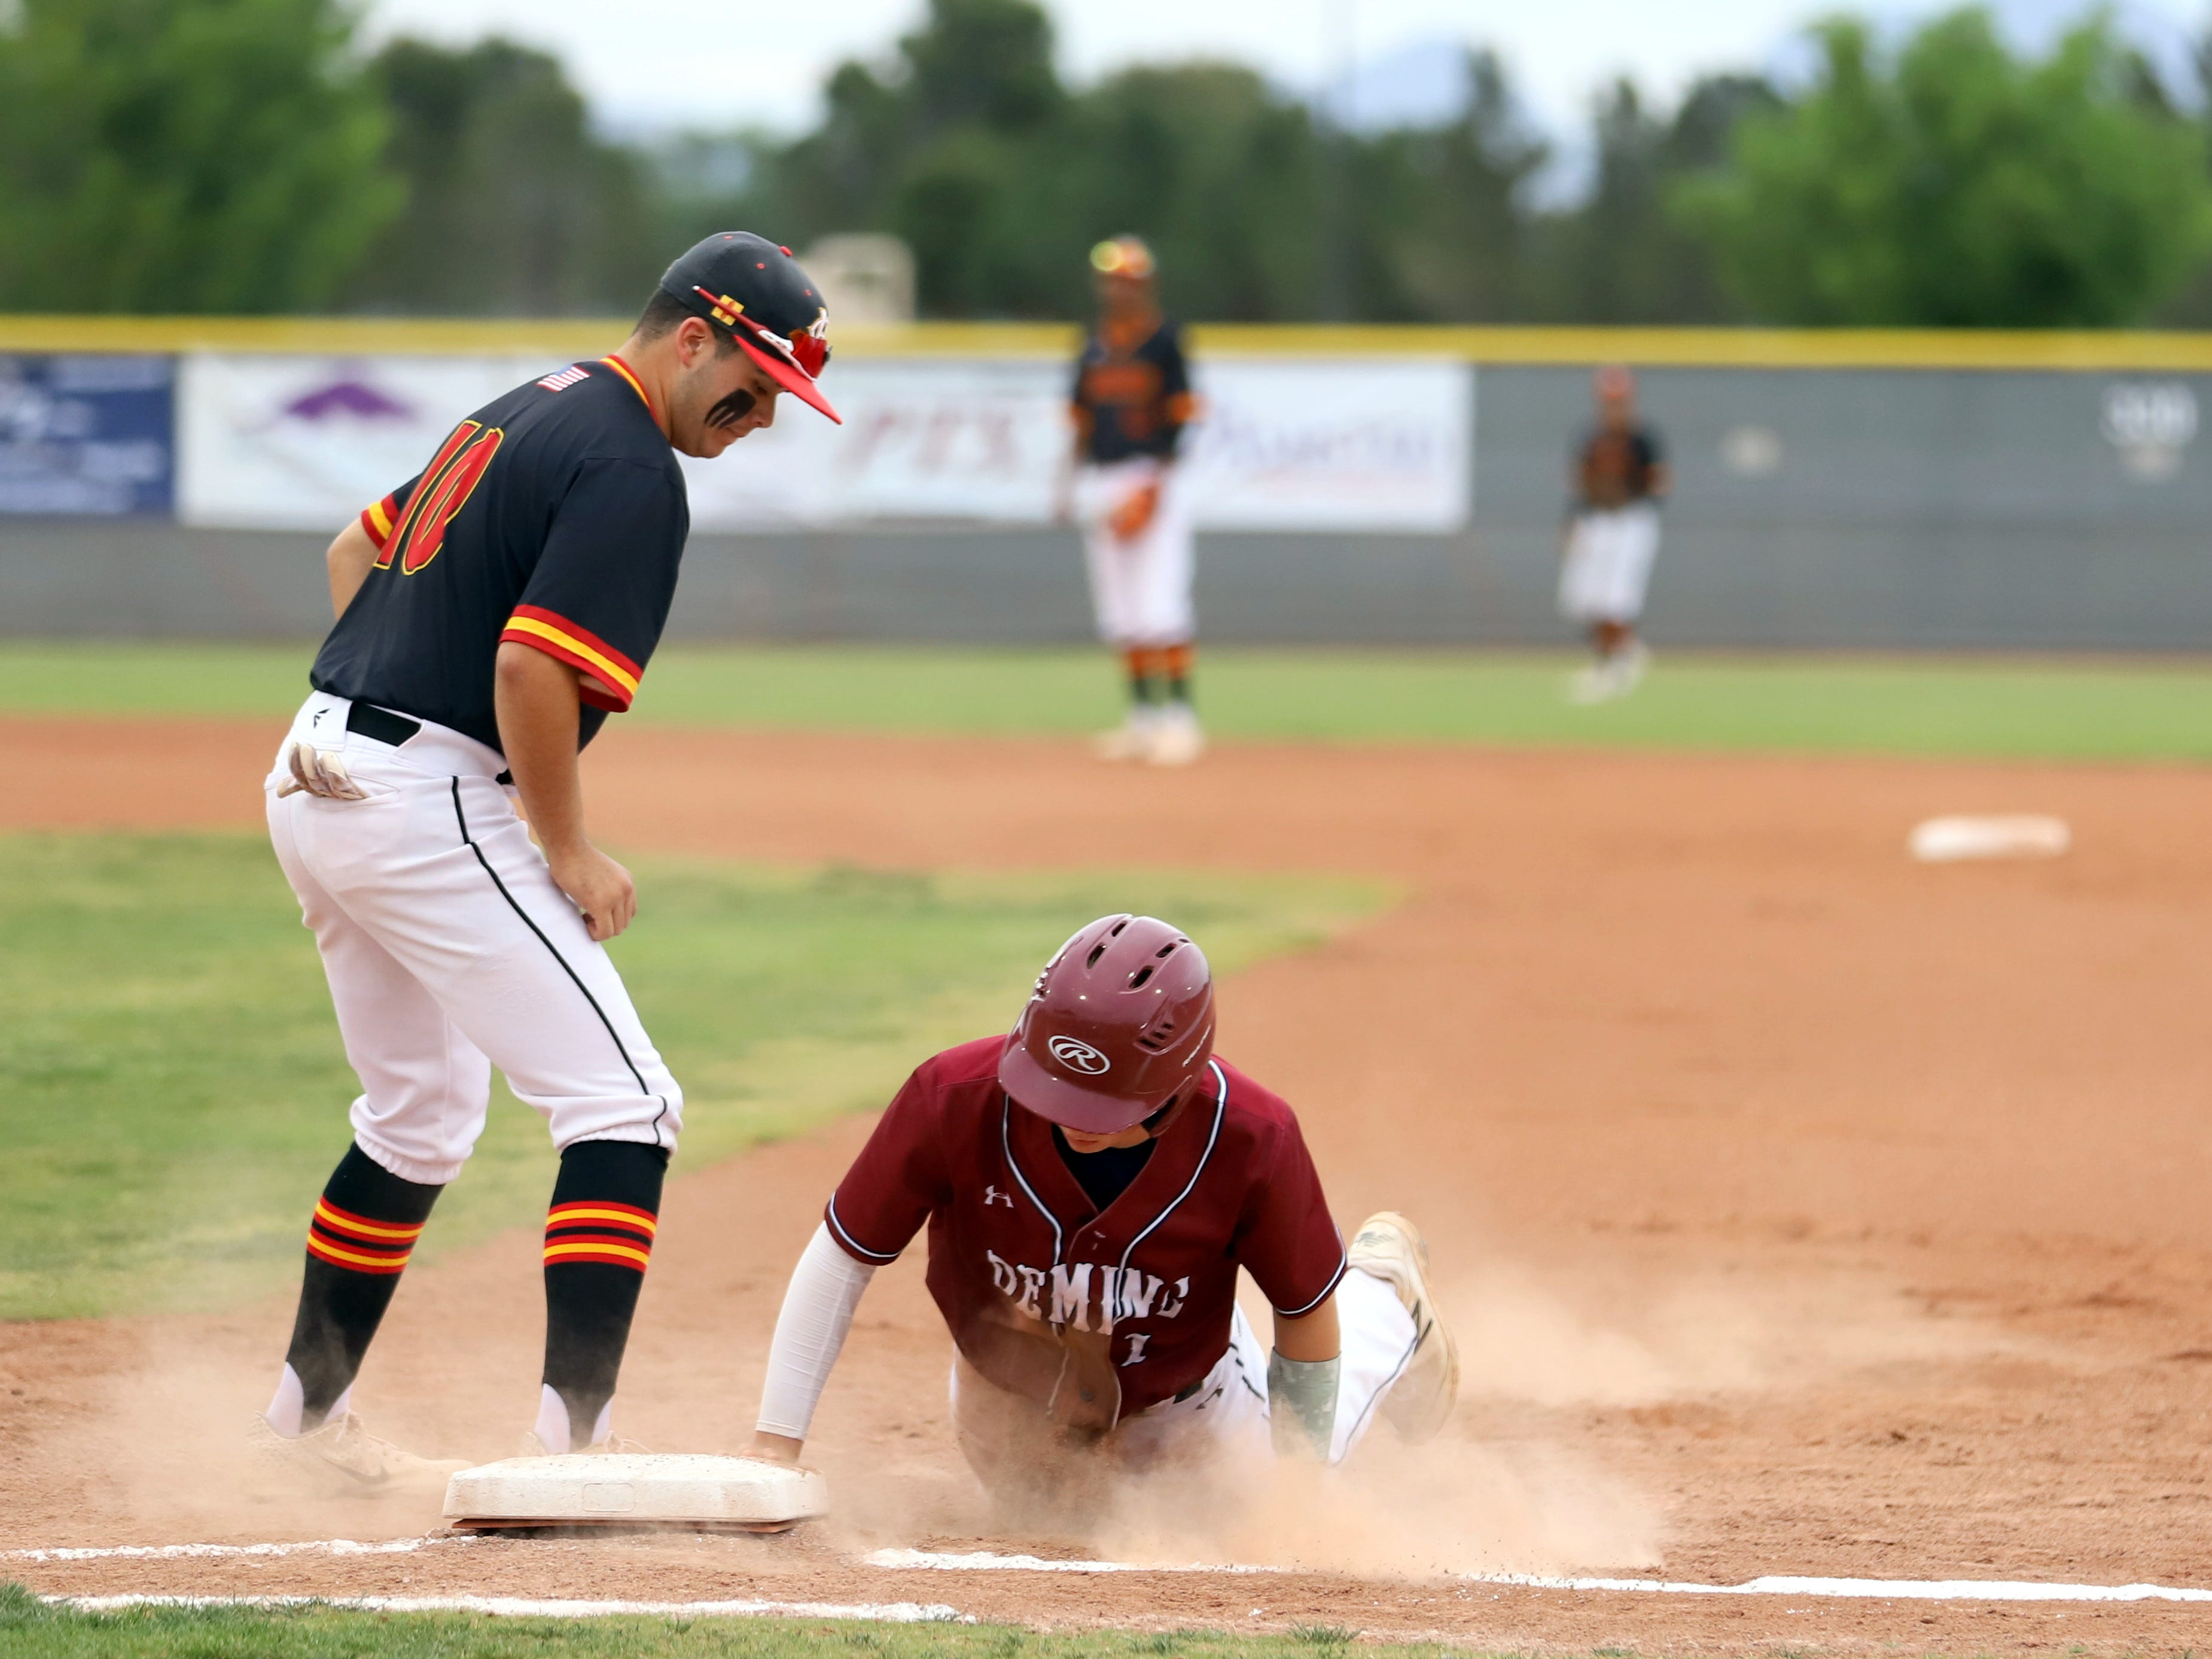 Junior Creighton Apodaca (1) dived back to first base to avoid the pick-off attempt from Centennial pitcher Wilson Bannister.